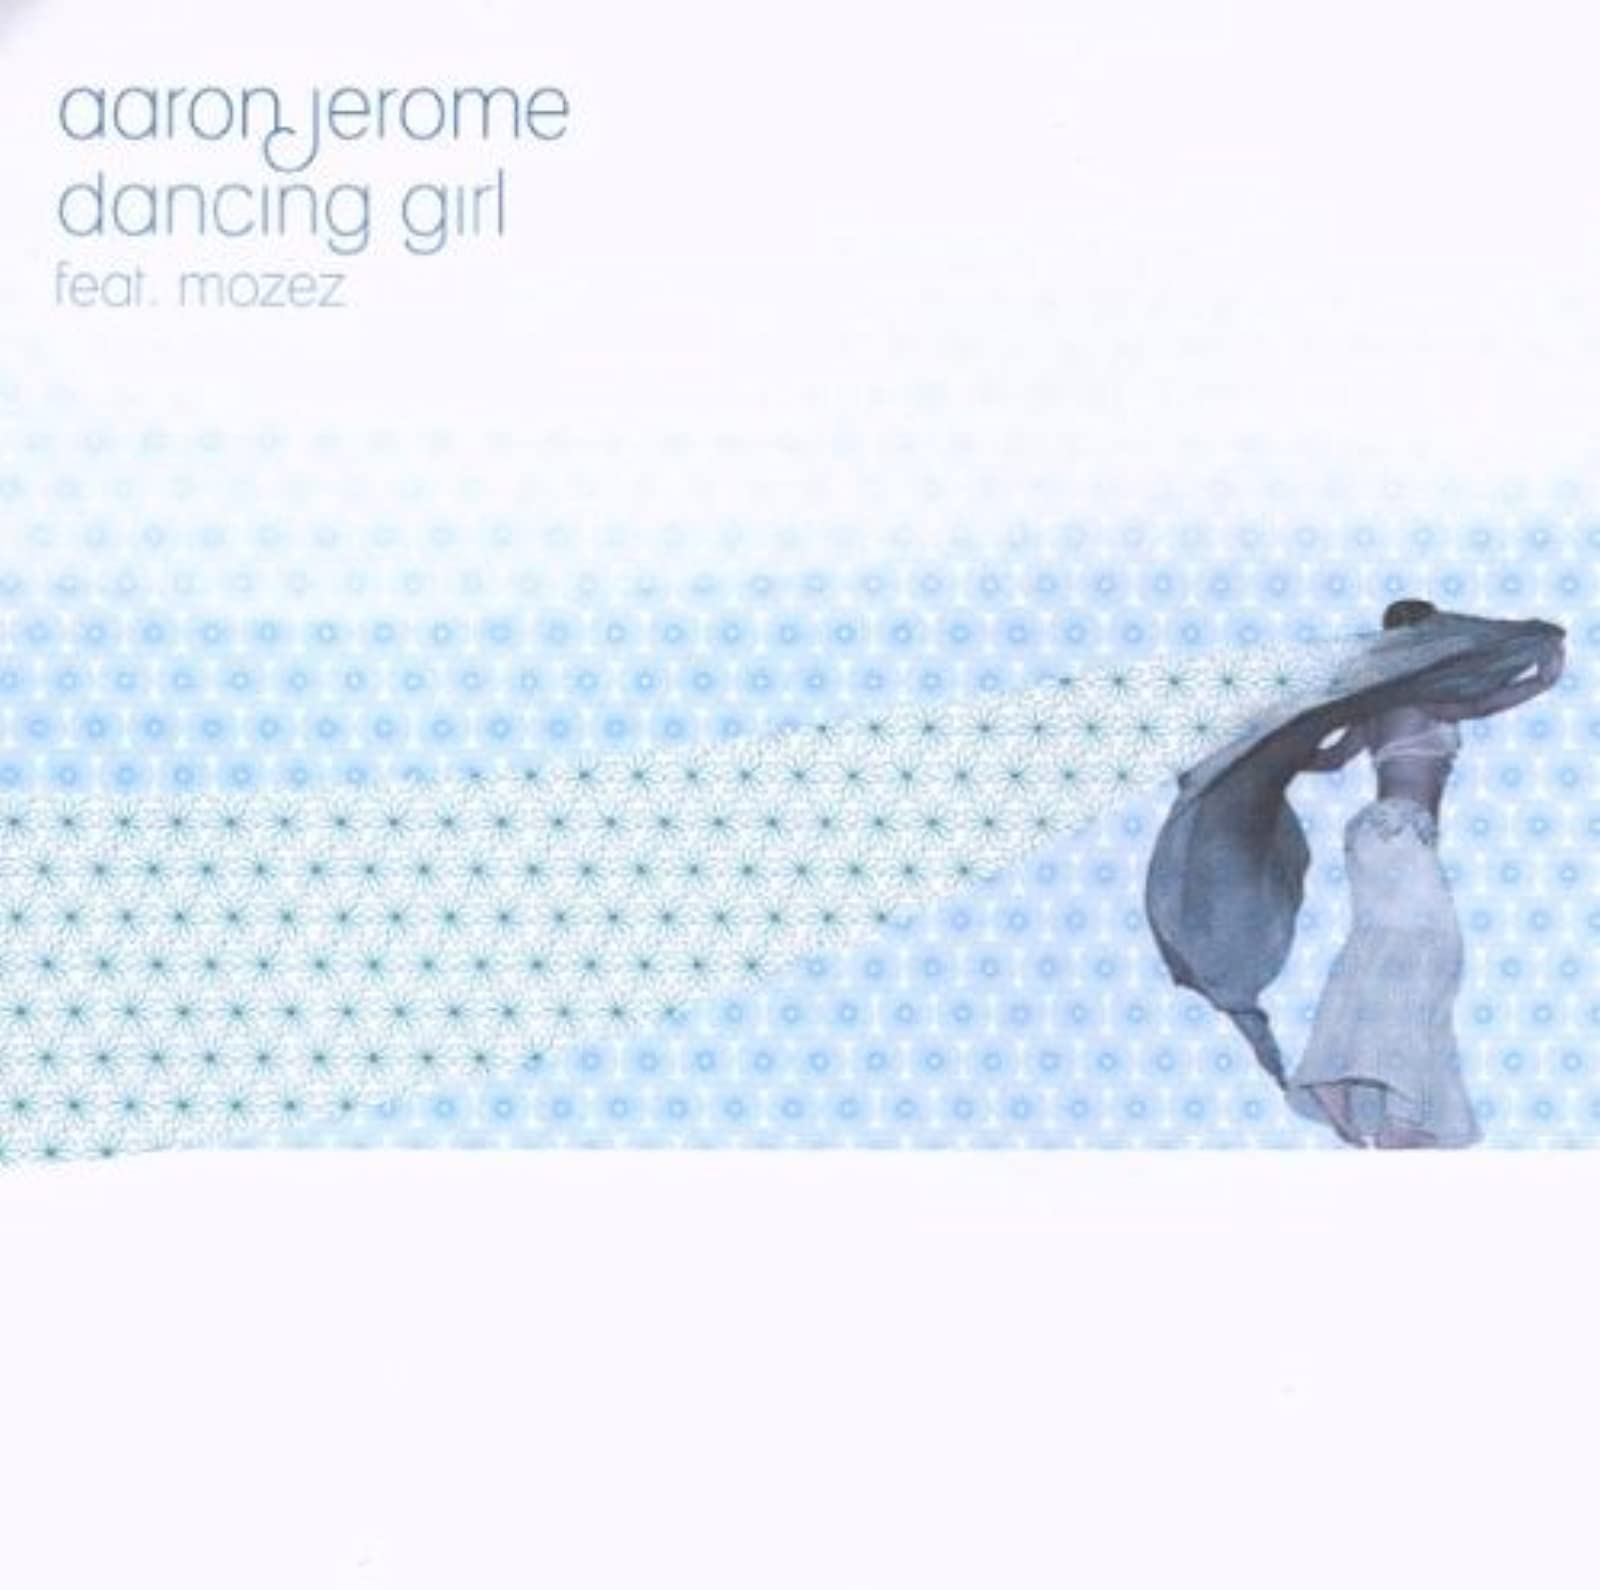 Dancing Girl/Blow Your Own By Jerome Aaron On Vinyl Record